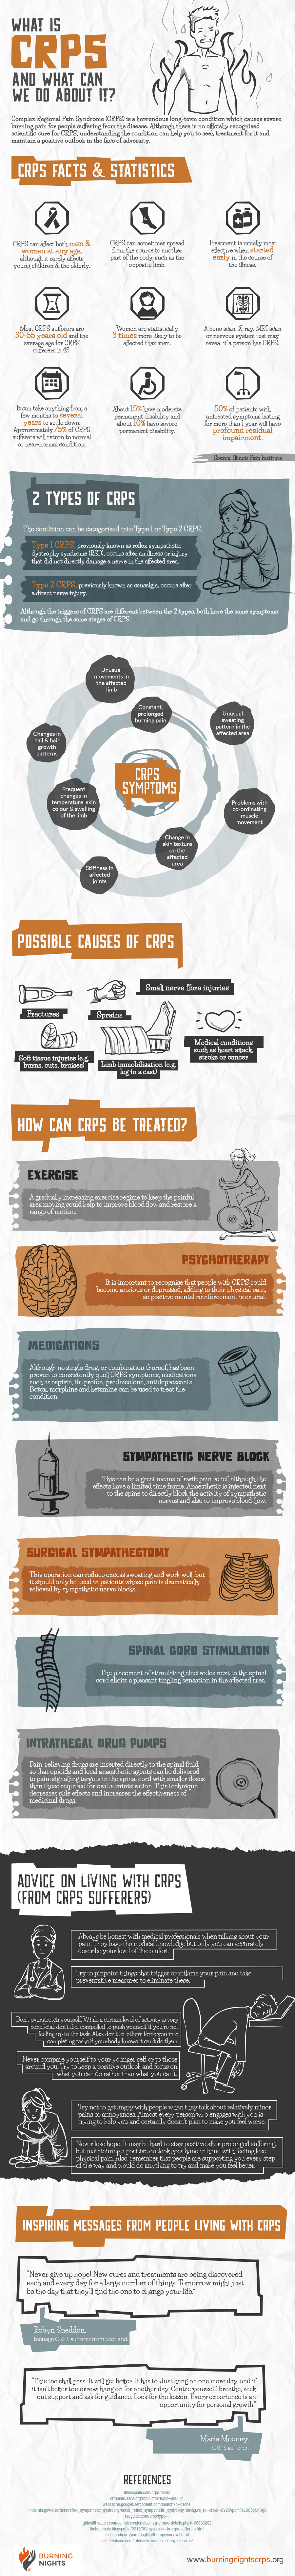 Our CRPS infographic outlines all the key information about Complex Regional Pain Syndrome (CRPS) , formerly known as Reflex Sympathetic Dystrophy (RSD), including what is CRPS, Complex Regional Pain Syndrome types, signs and symptoms of CRPS, causes and treatments for CRPS.